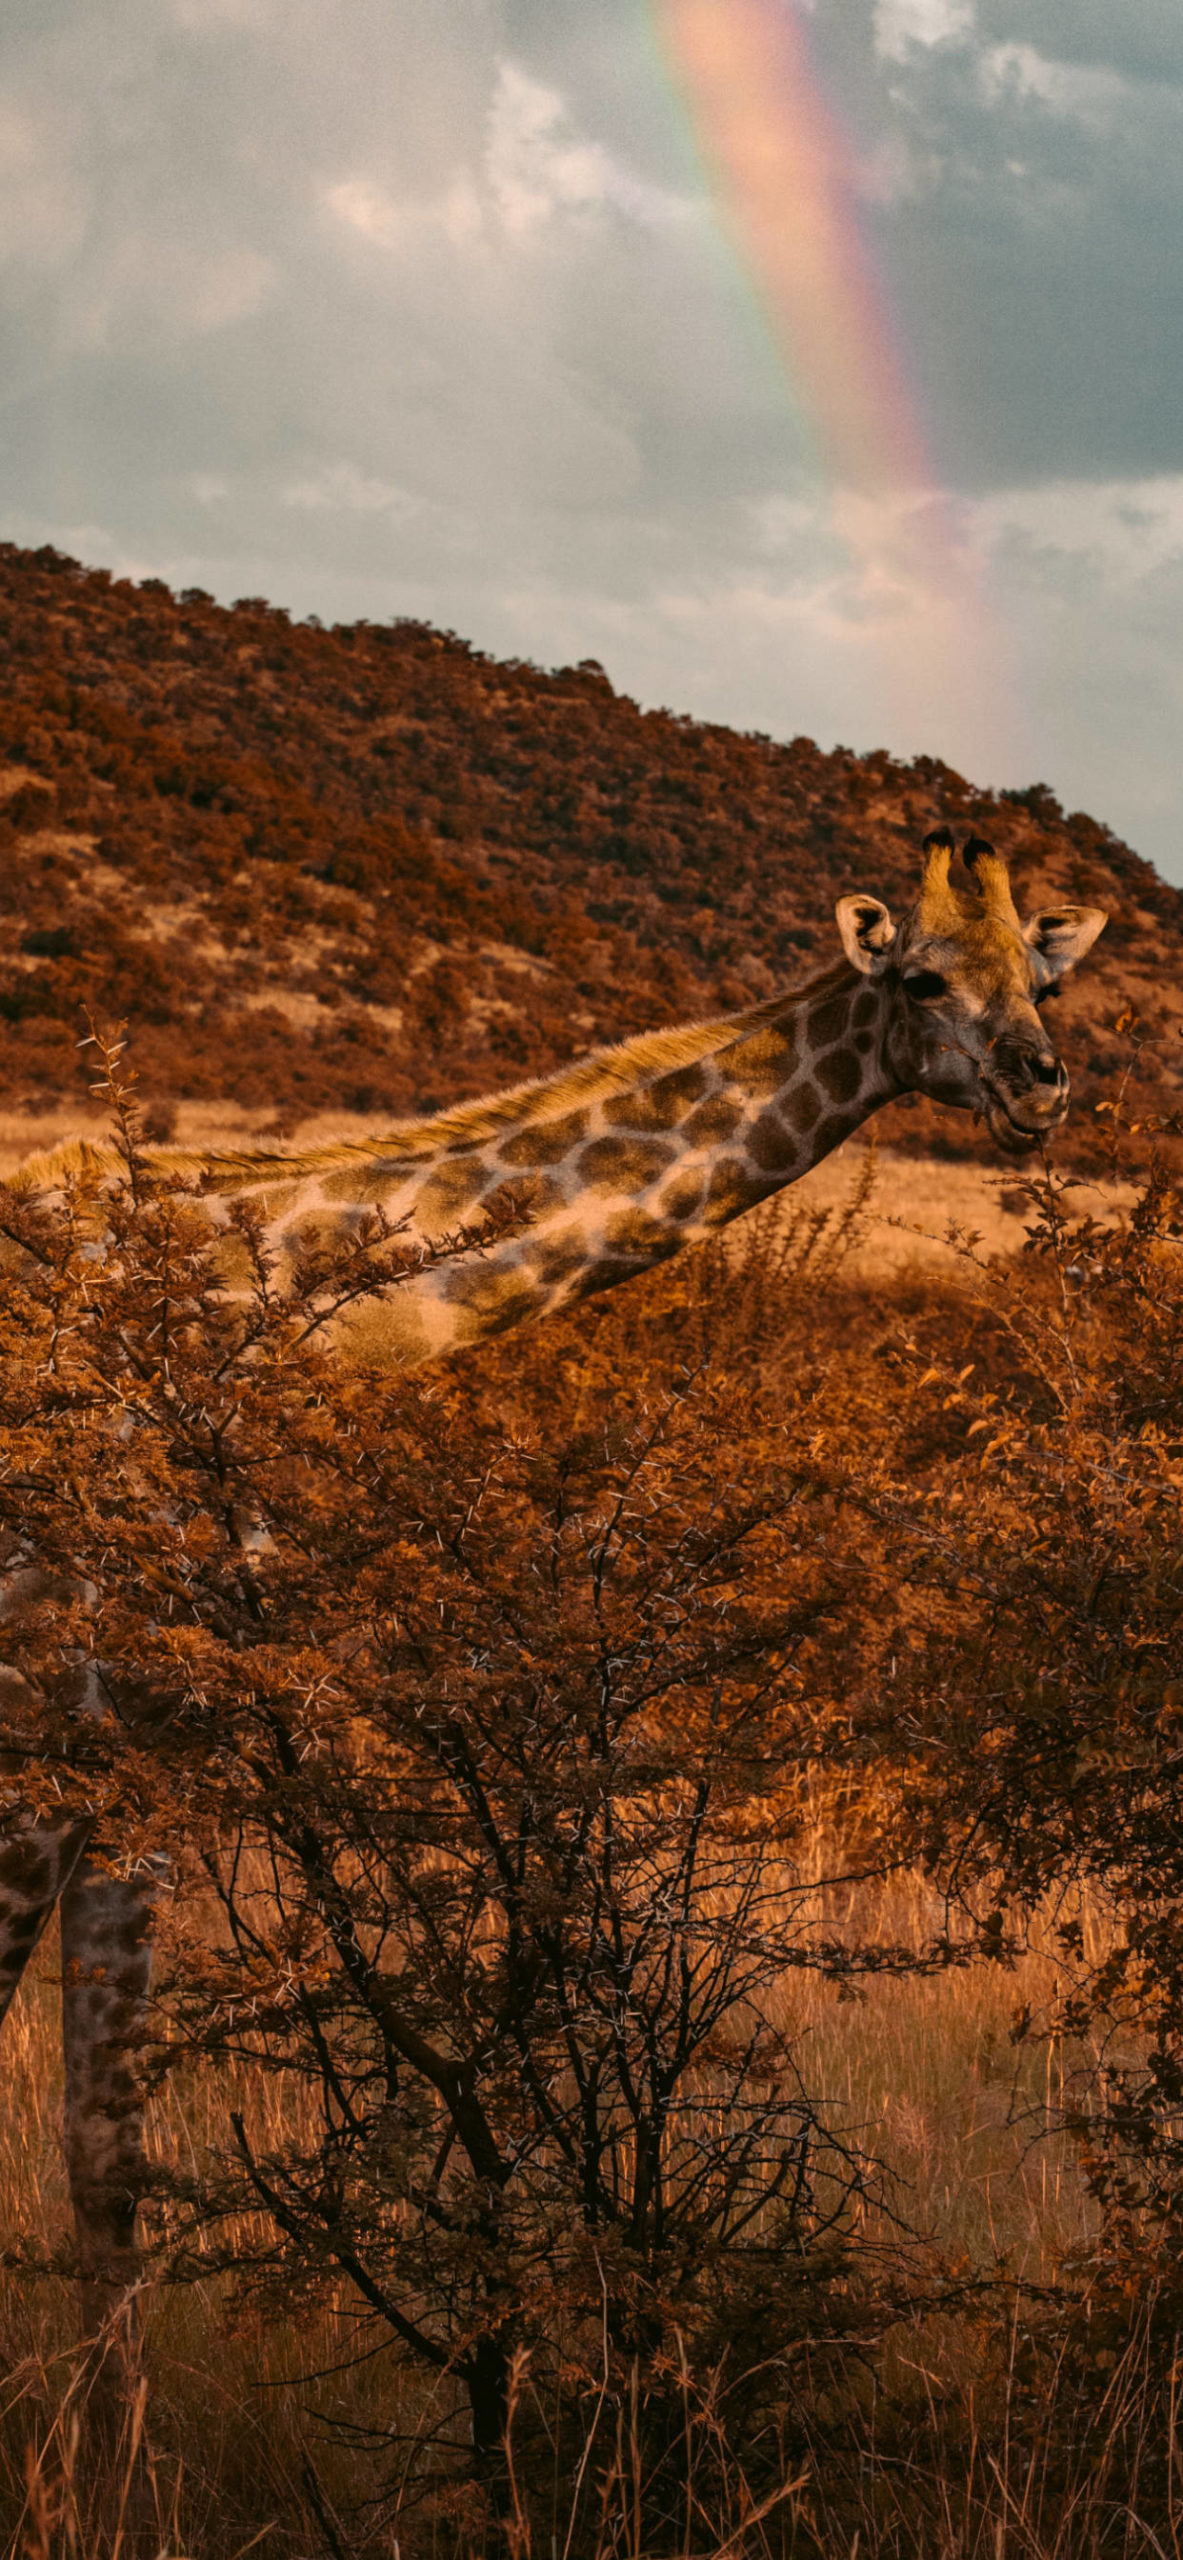 iPhone wallpapers south africa girafe scaled South Africa